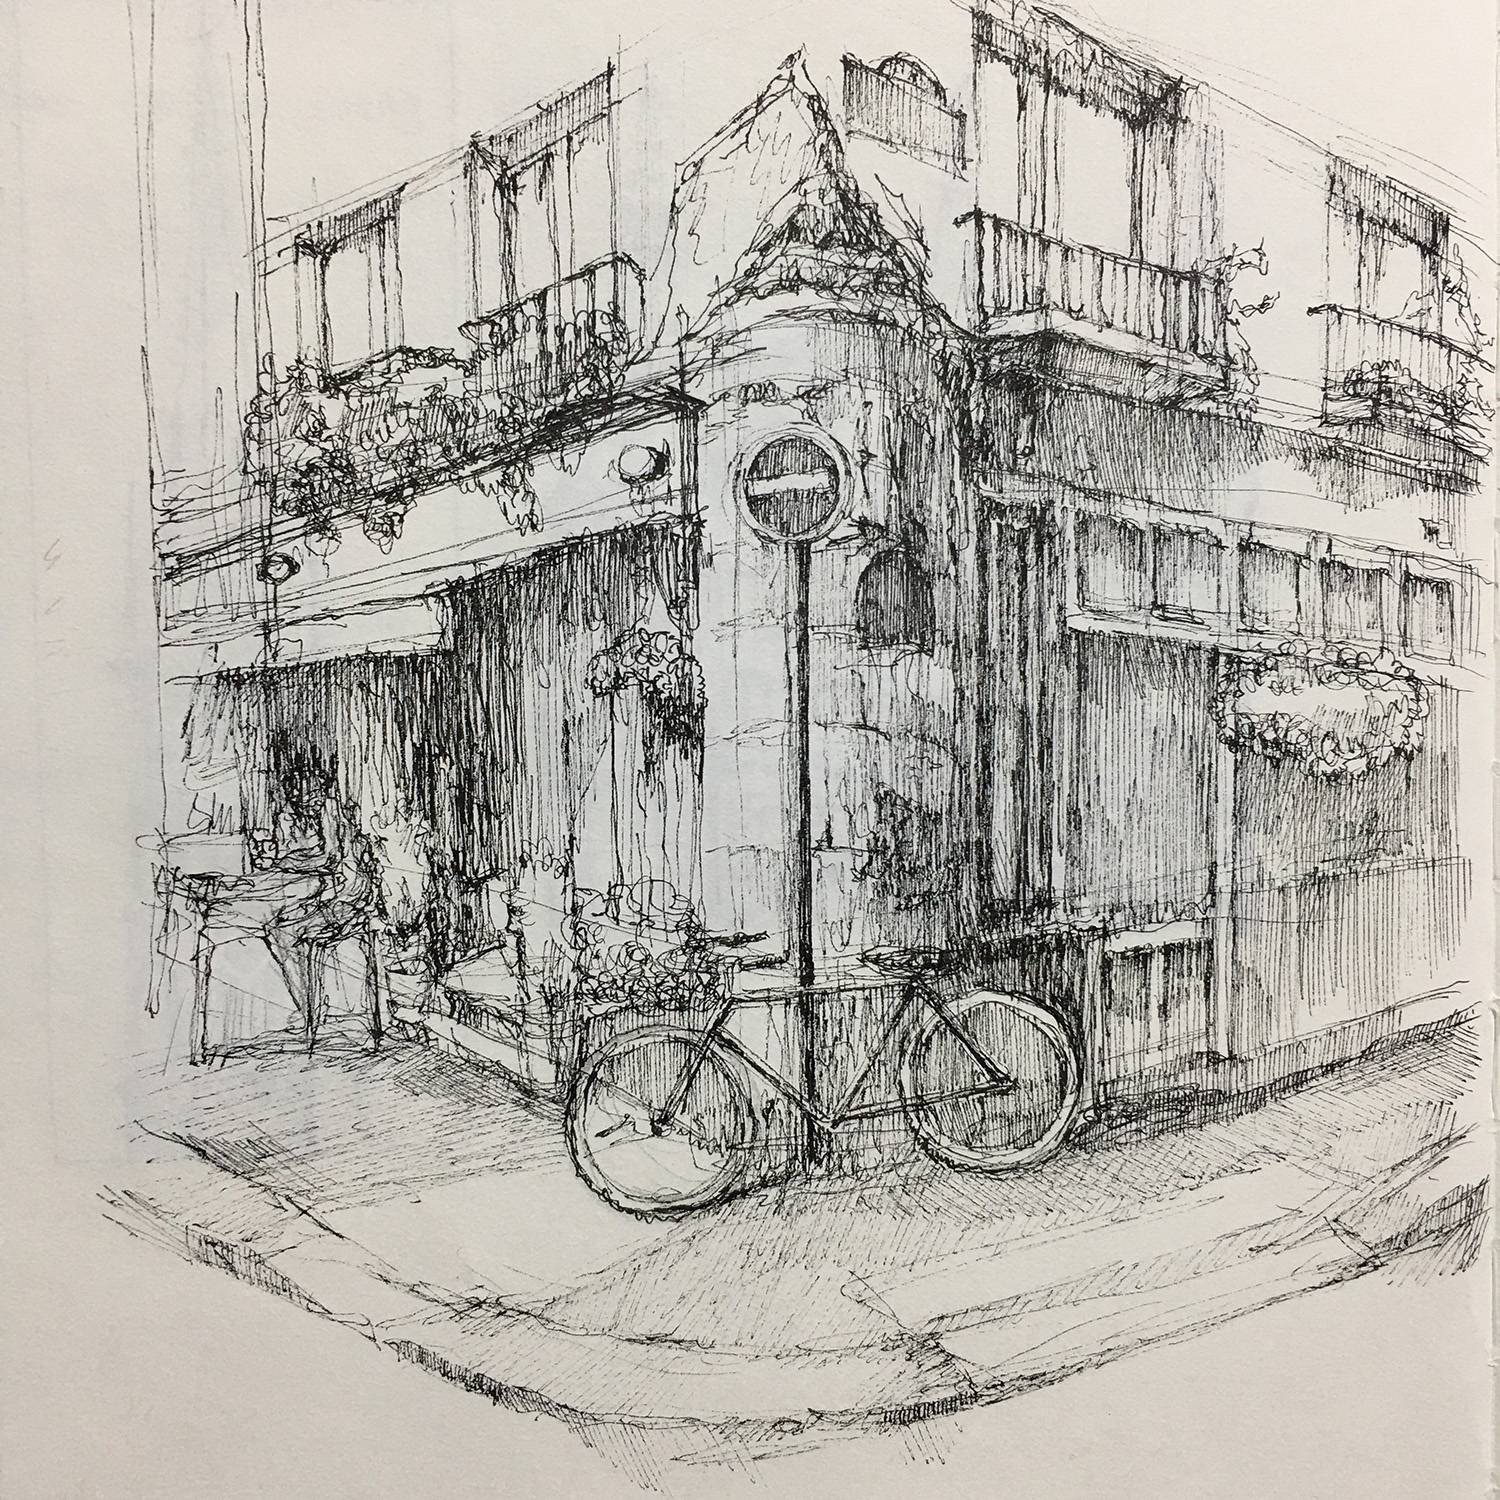 Drawing of a Paris alley